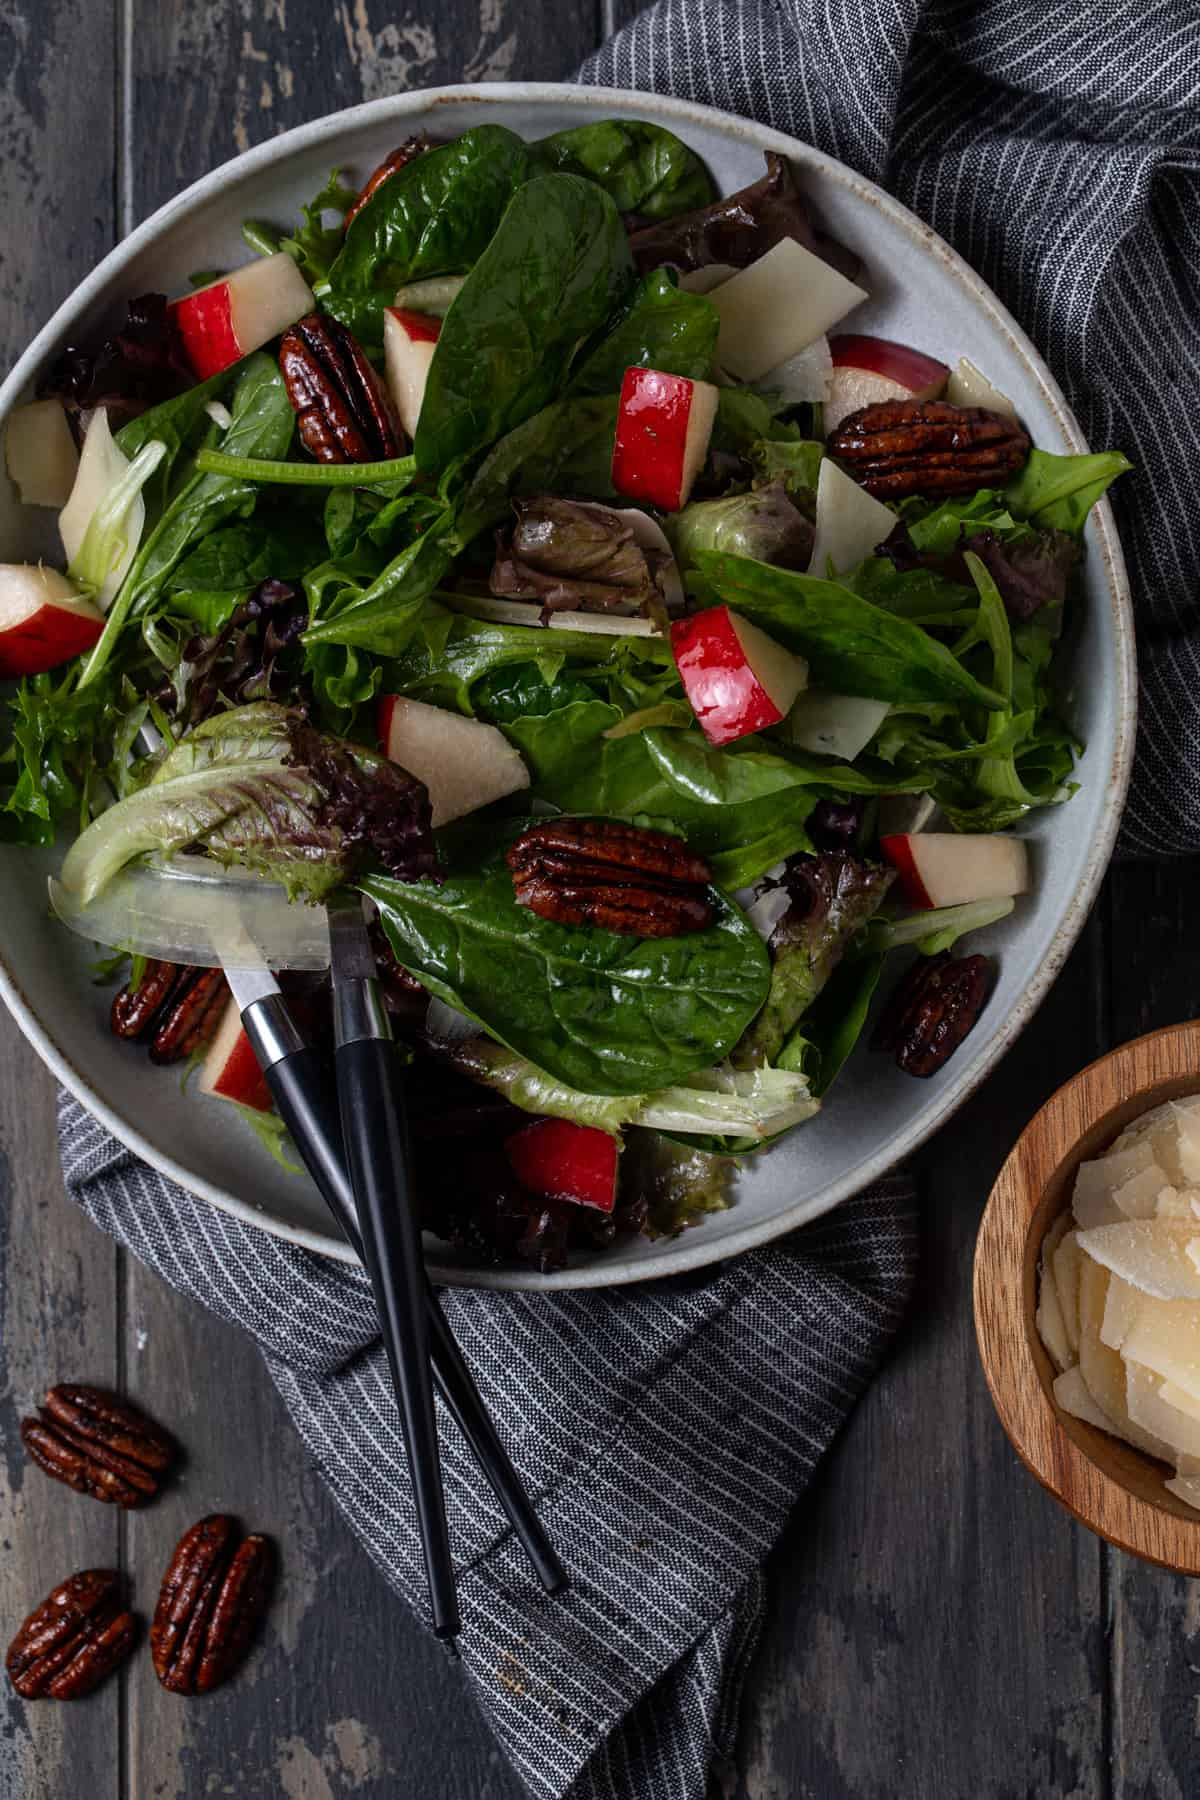 Salad in gray bowl with pears, parmesan cheese and candied pecans.